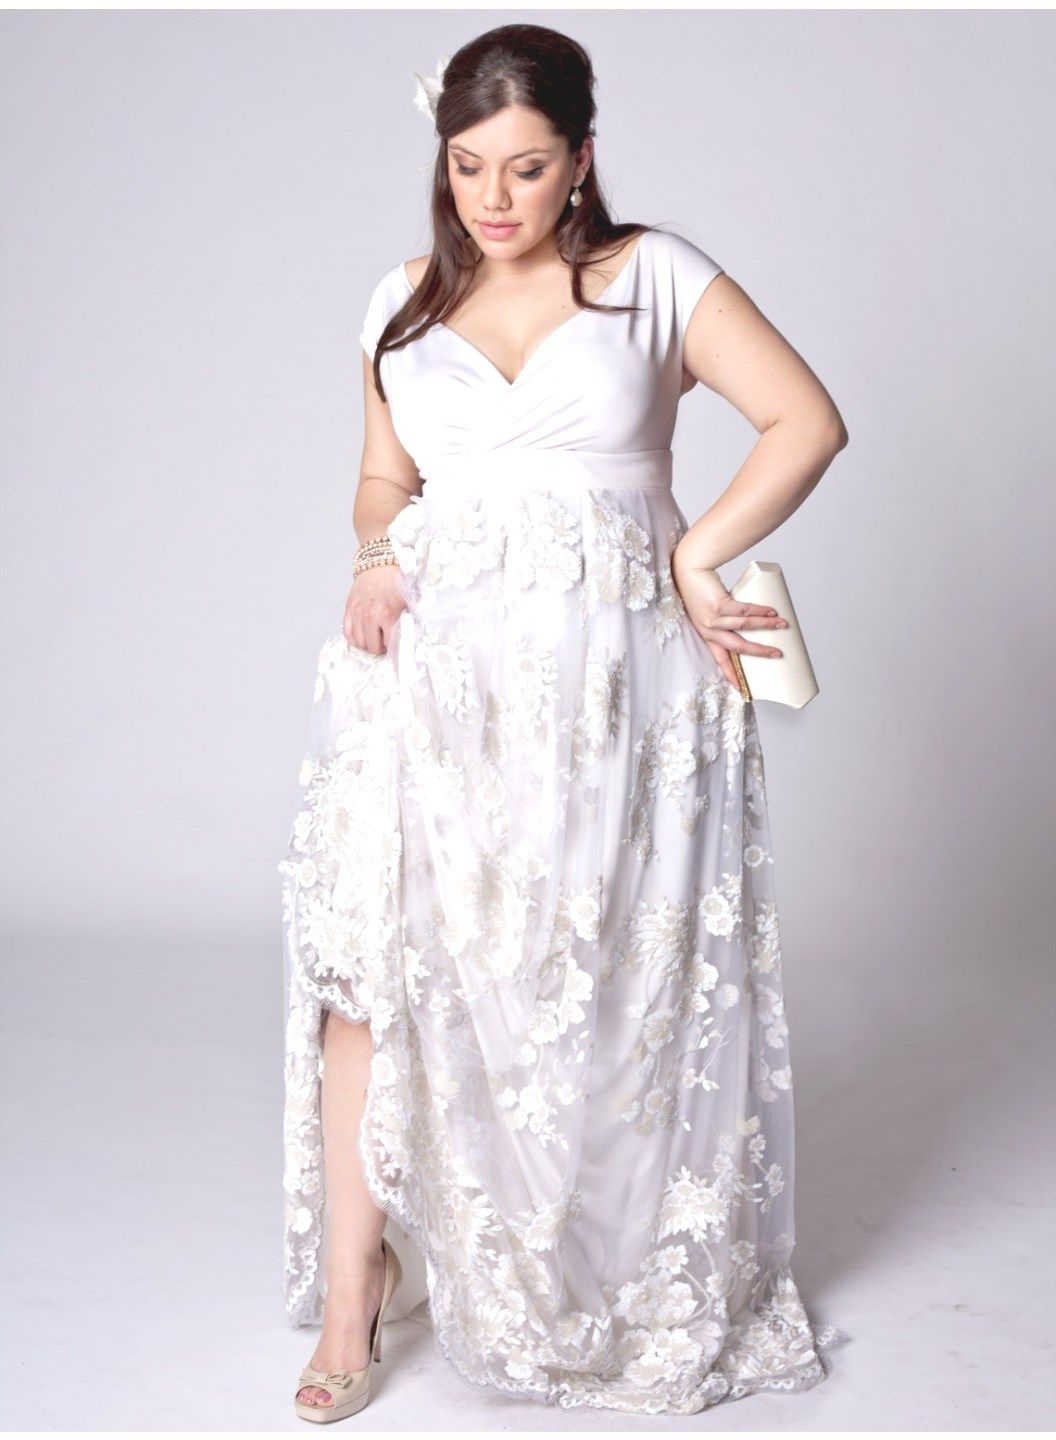 plus size wedding dresses wedding dress ideas vow renewal